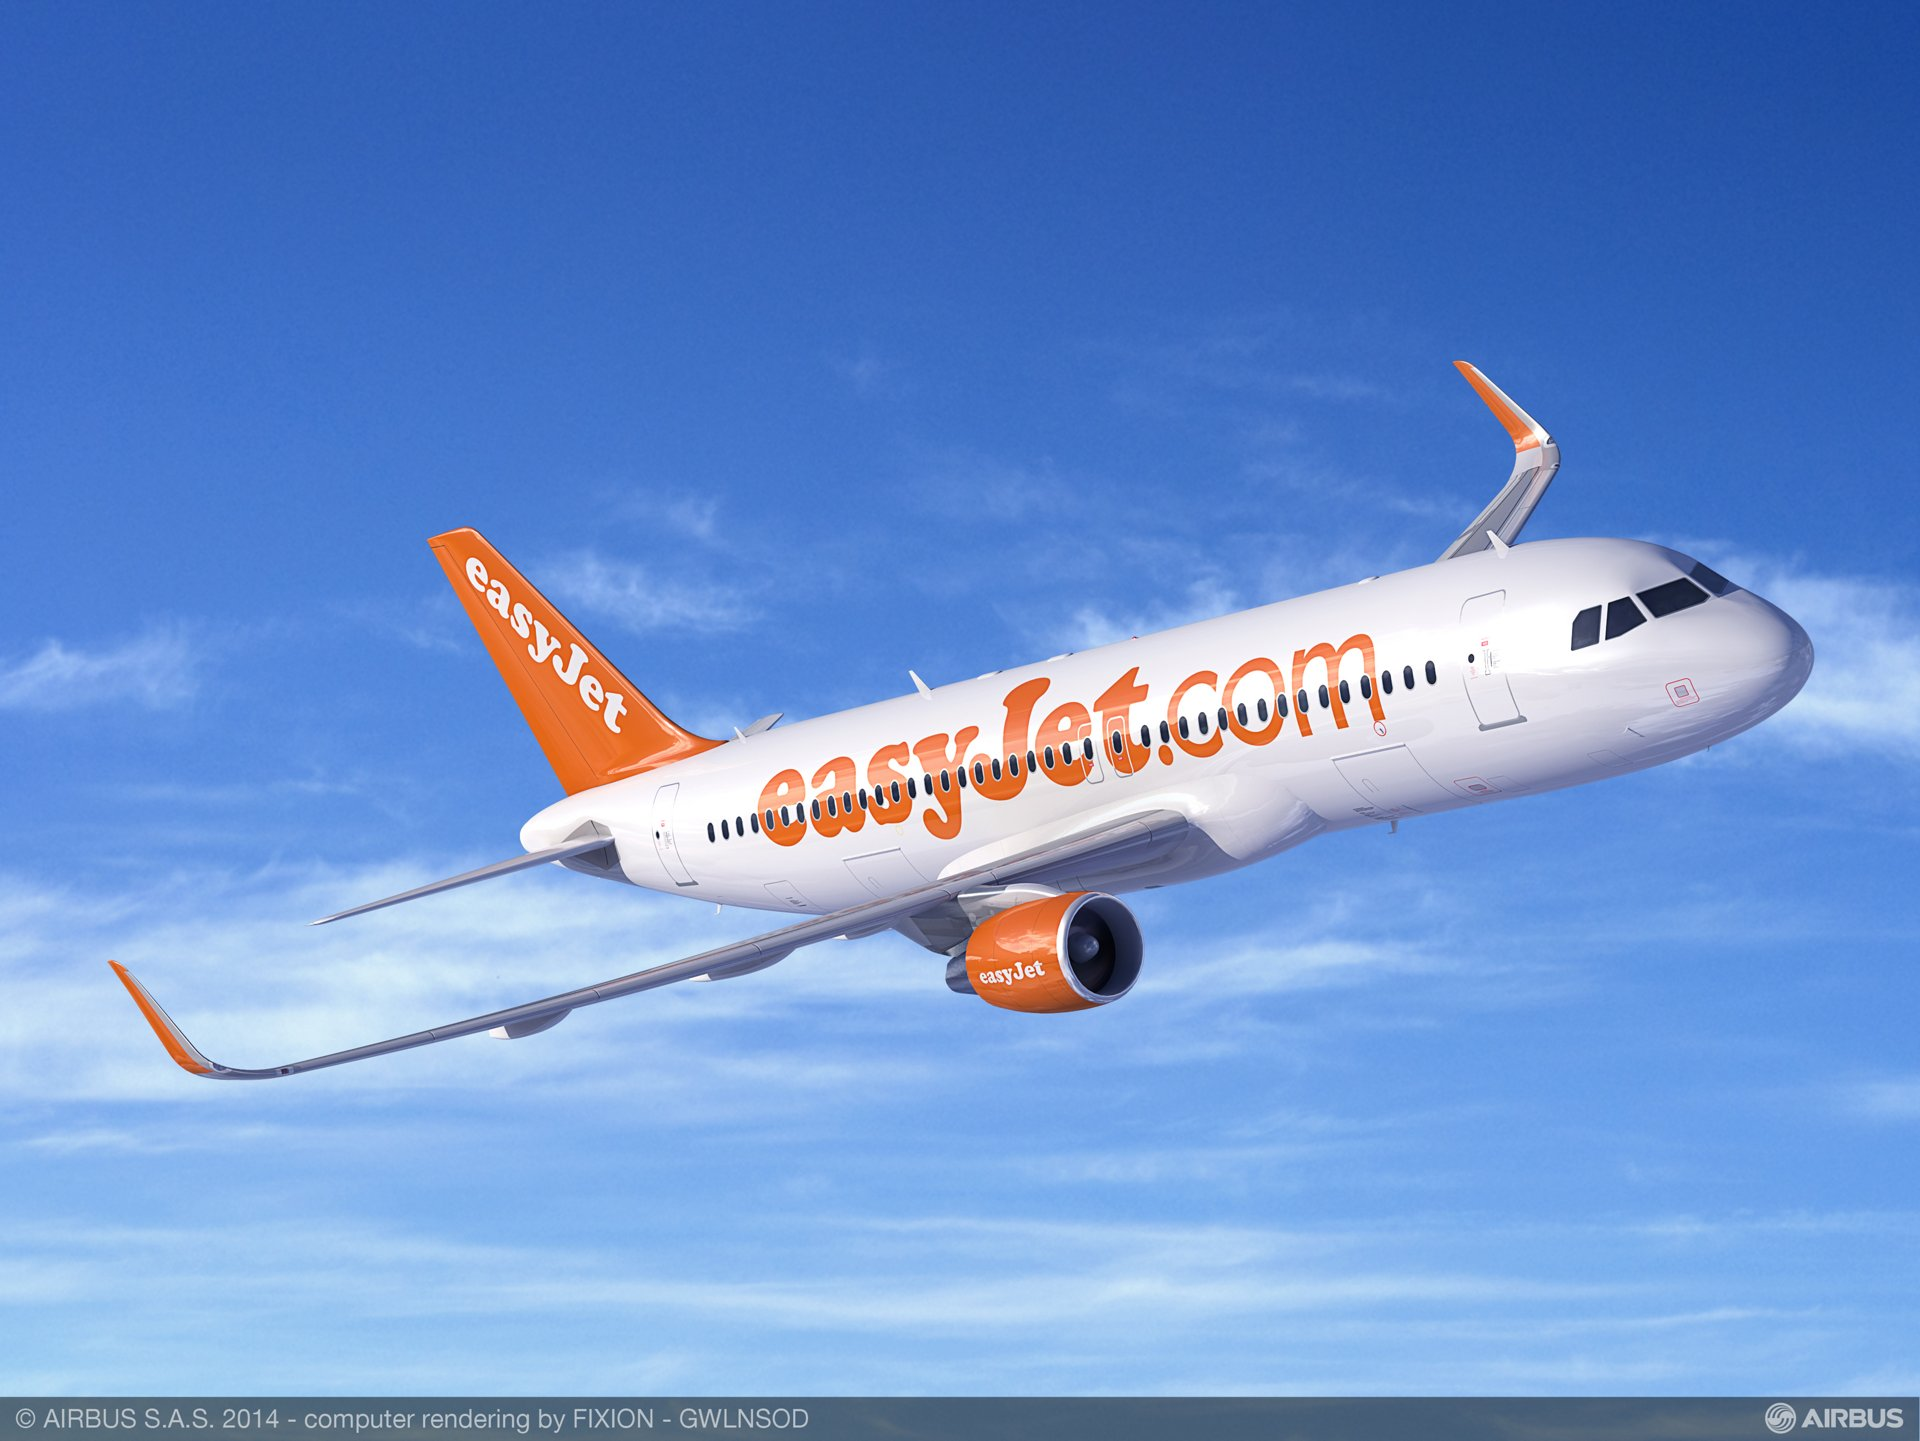 With an order for 27 additional current engine option (CEO) A320s, easyJet's combined total order for A320 Family jetliners rises to 415 aircraft – comprising both CEO and new engine option (NEO) versions